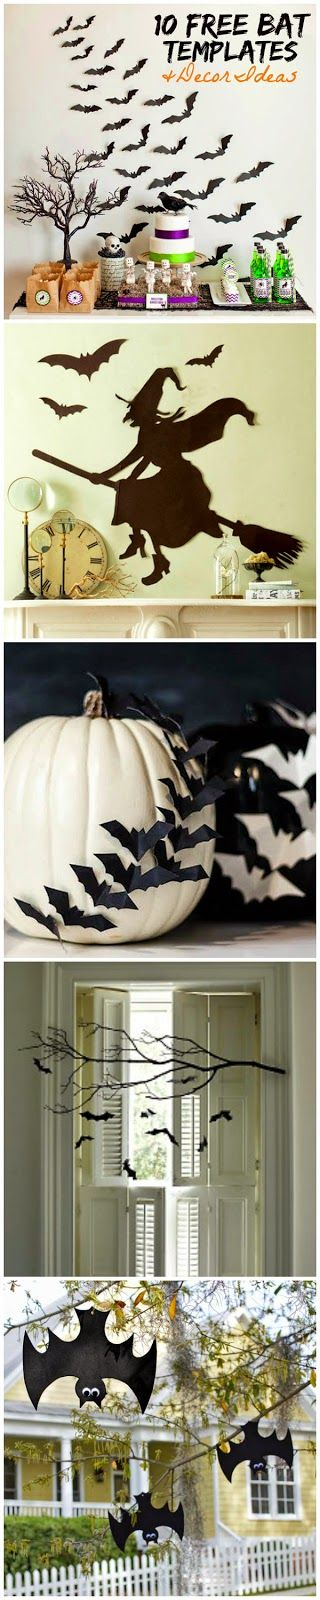 free bat and witch templates for Halloween...: